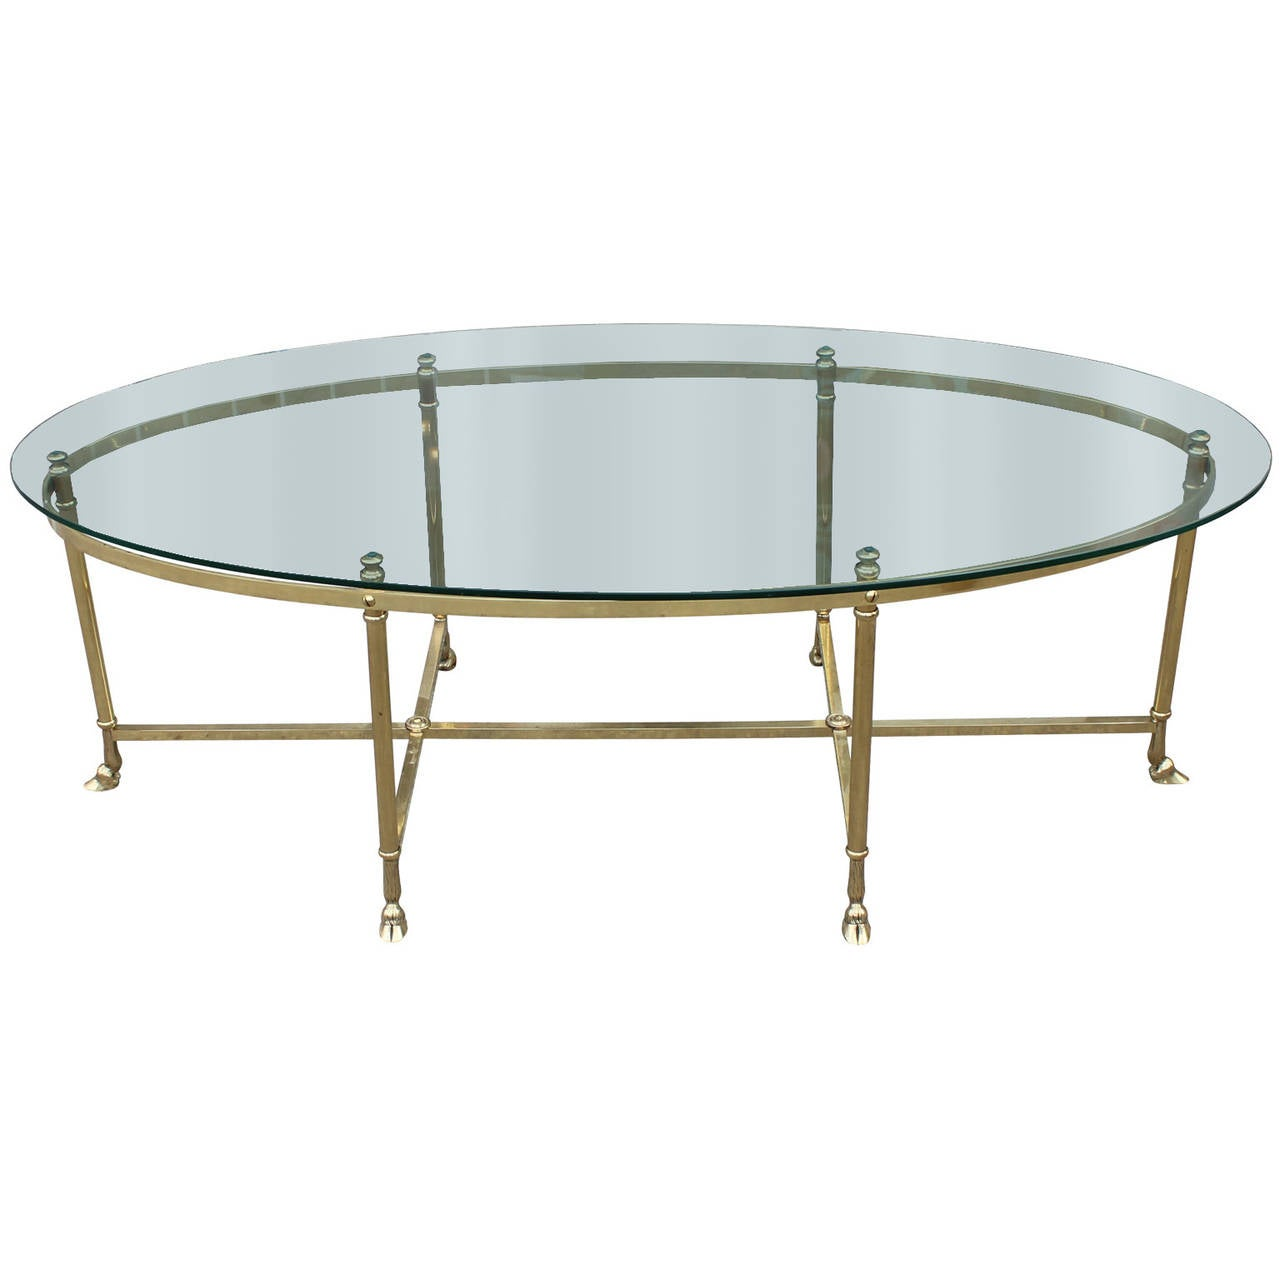 French Oval Coffee Table: French Hooved Brass Hollywood Regency Oval Cocktail Table